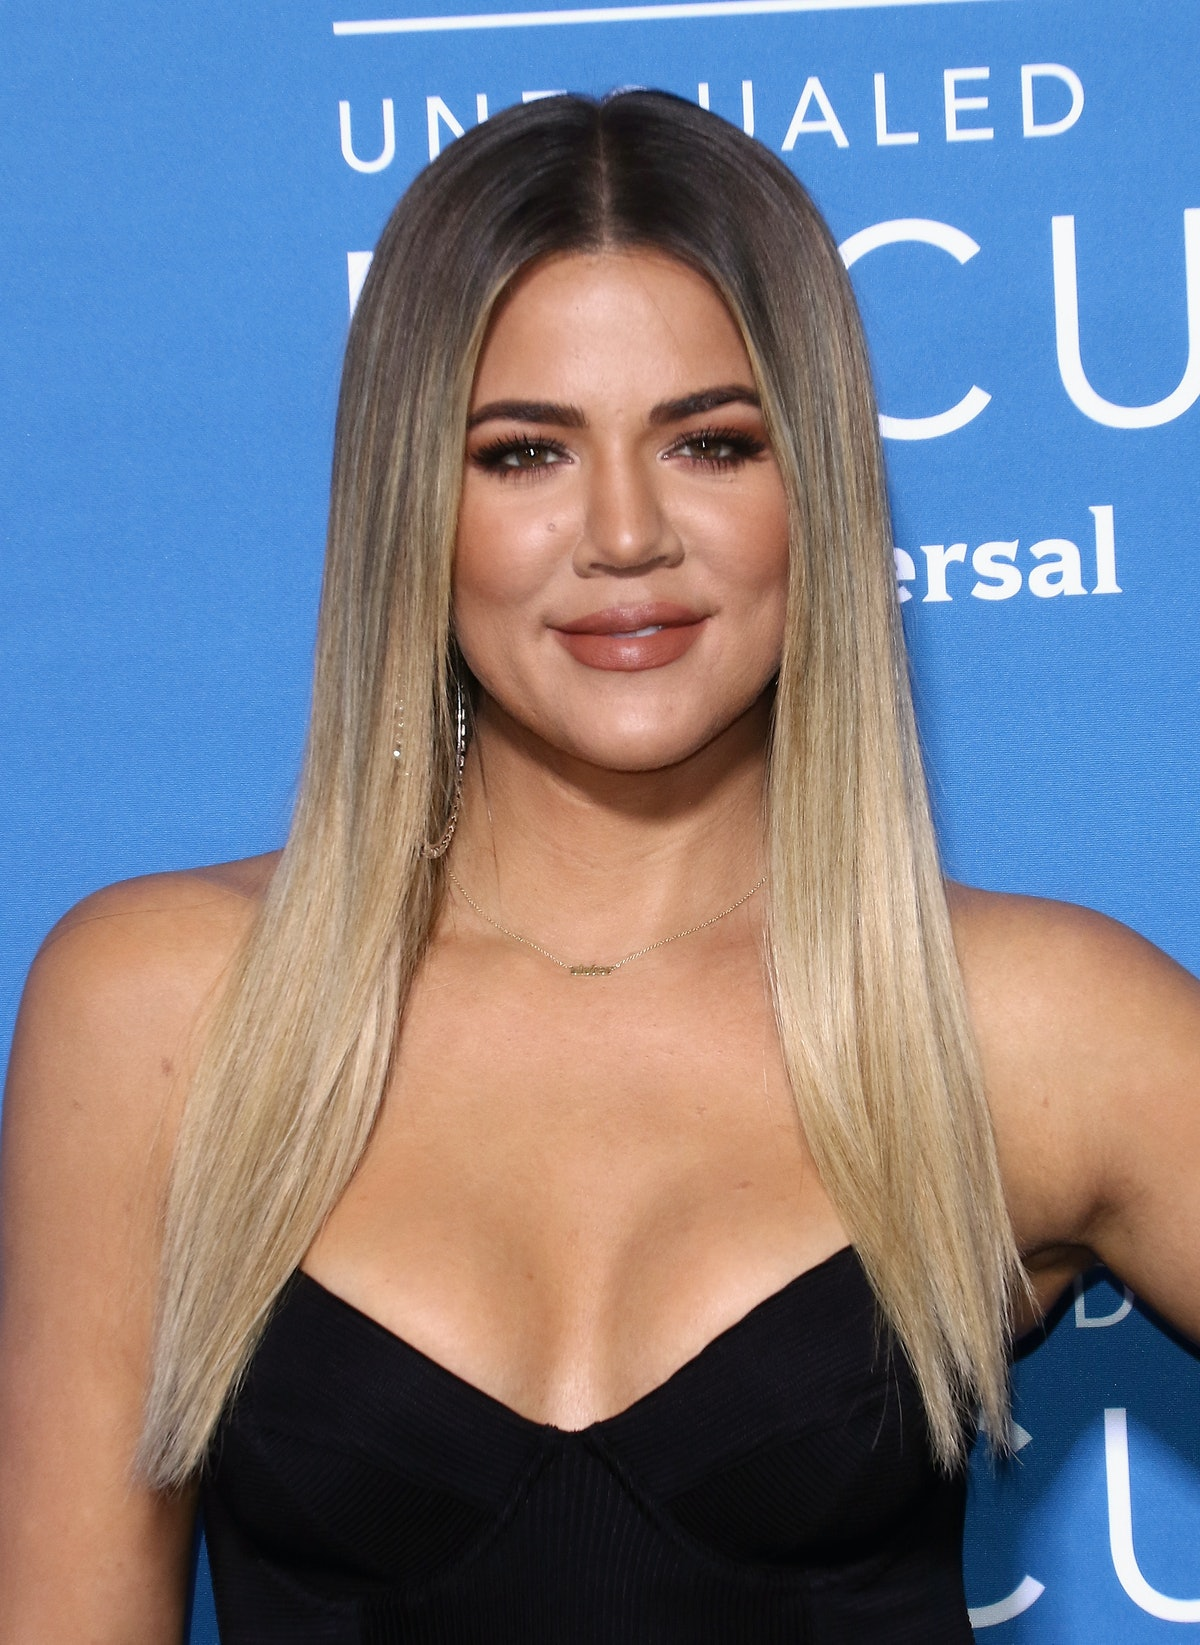 Khloé Kardashian is embracing her naturally curly hair, and it's so nice to see.